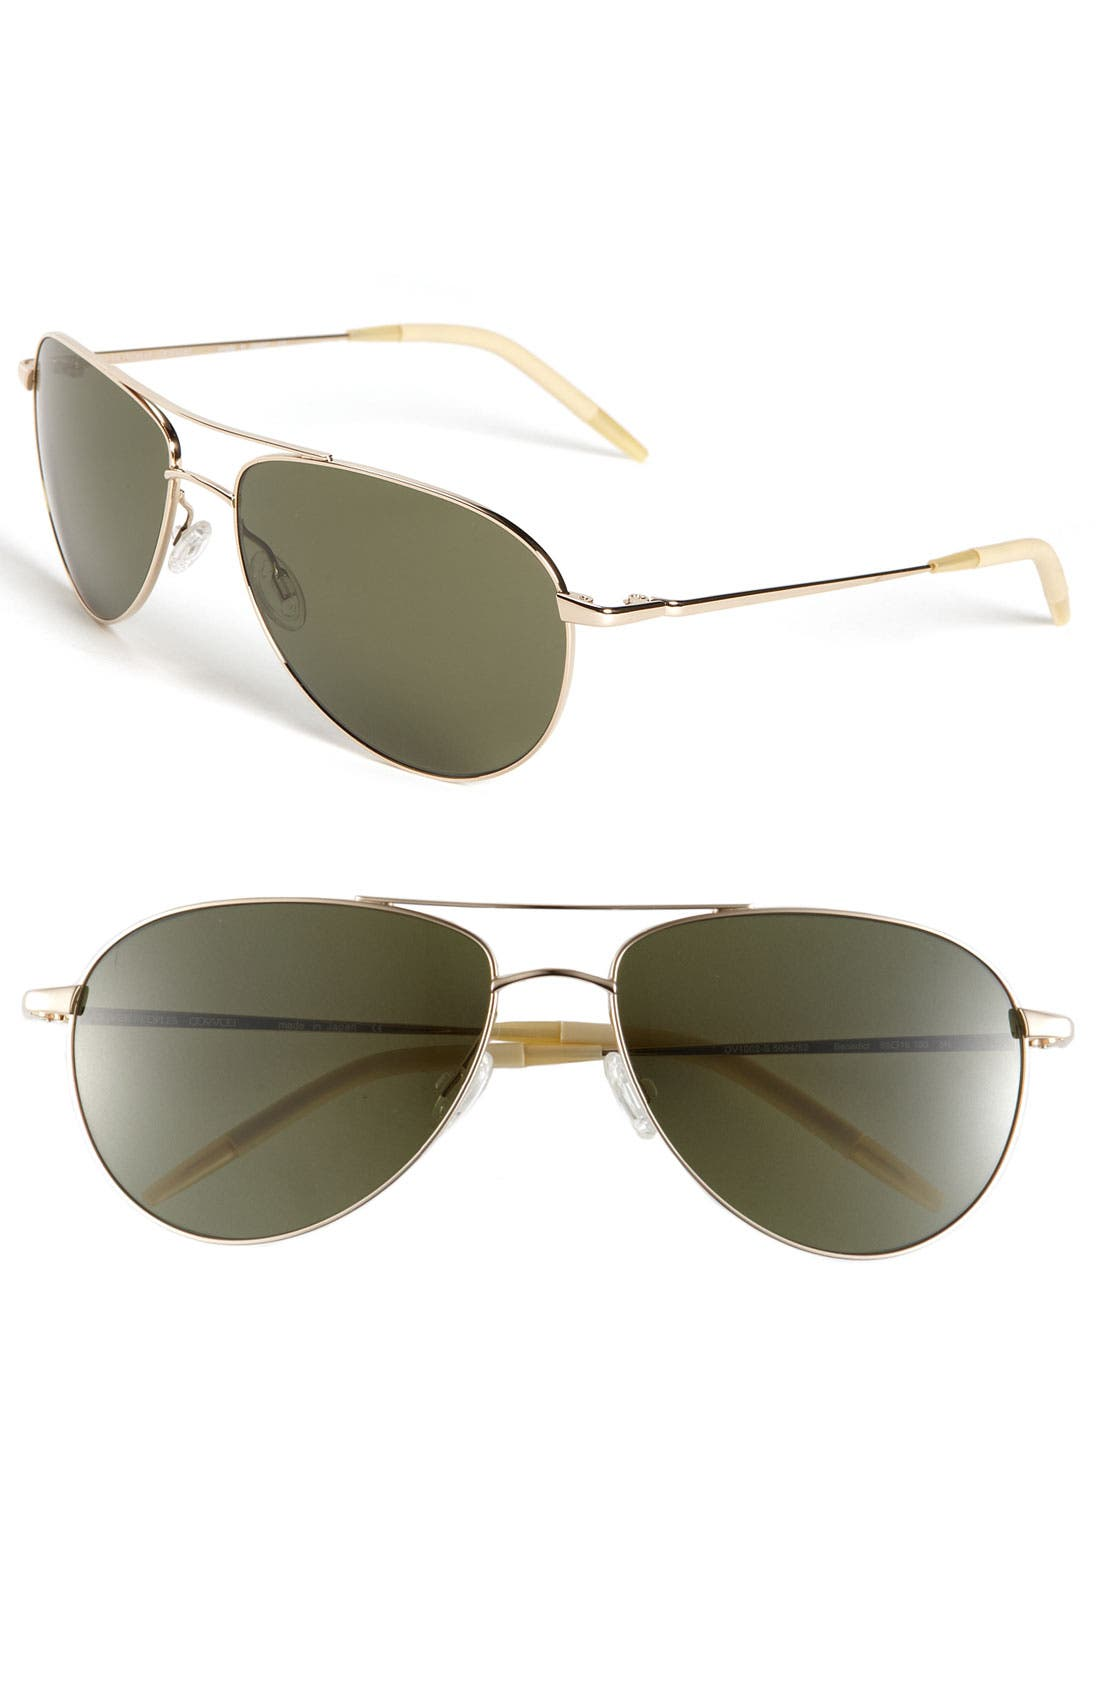 Oliver Peoples 'Benedict' 59mm Aviator Sunglasses (Regular Retail Price: $350.00)